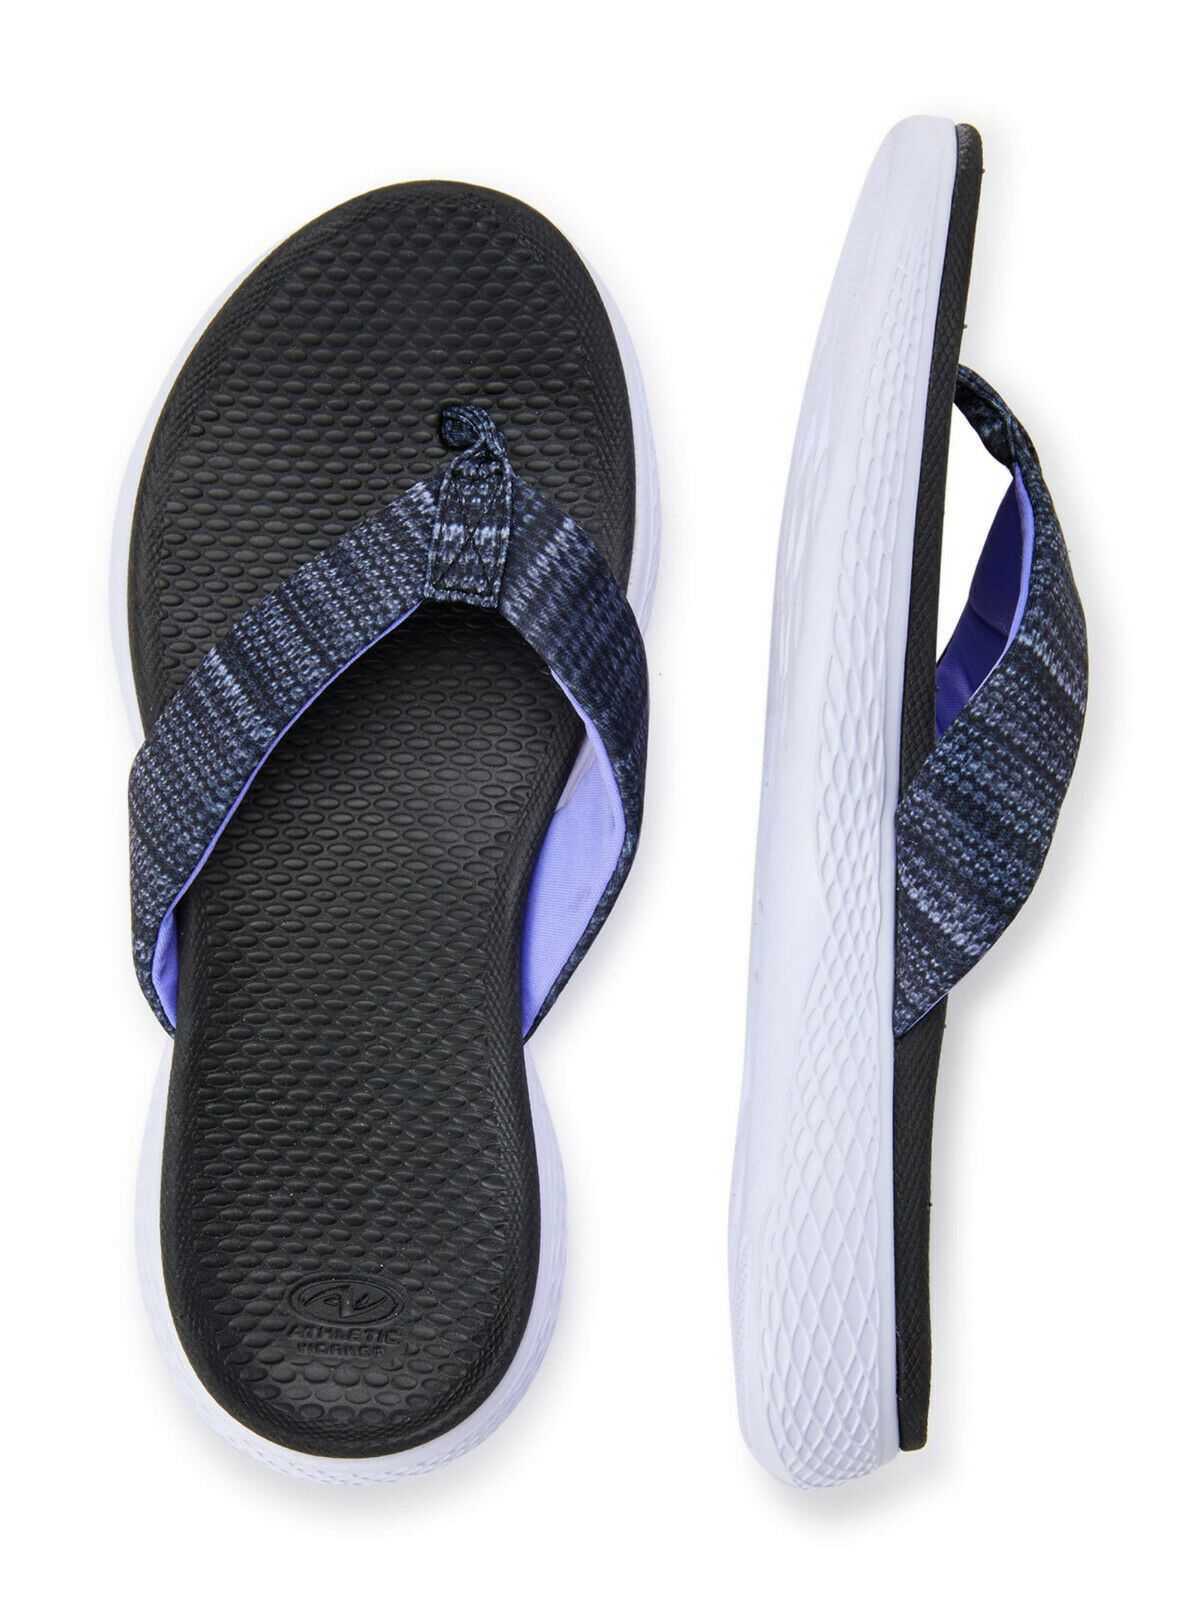 **NEW WOMENS ATHLETIC WORKS CUSHIONED FOOTBED BEACHWEAR BLACK FLIP FLOPS SANDALS Clothing, Shoes & Accessories